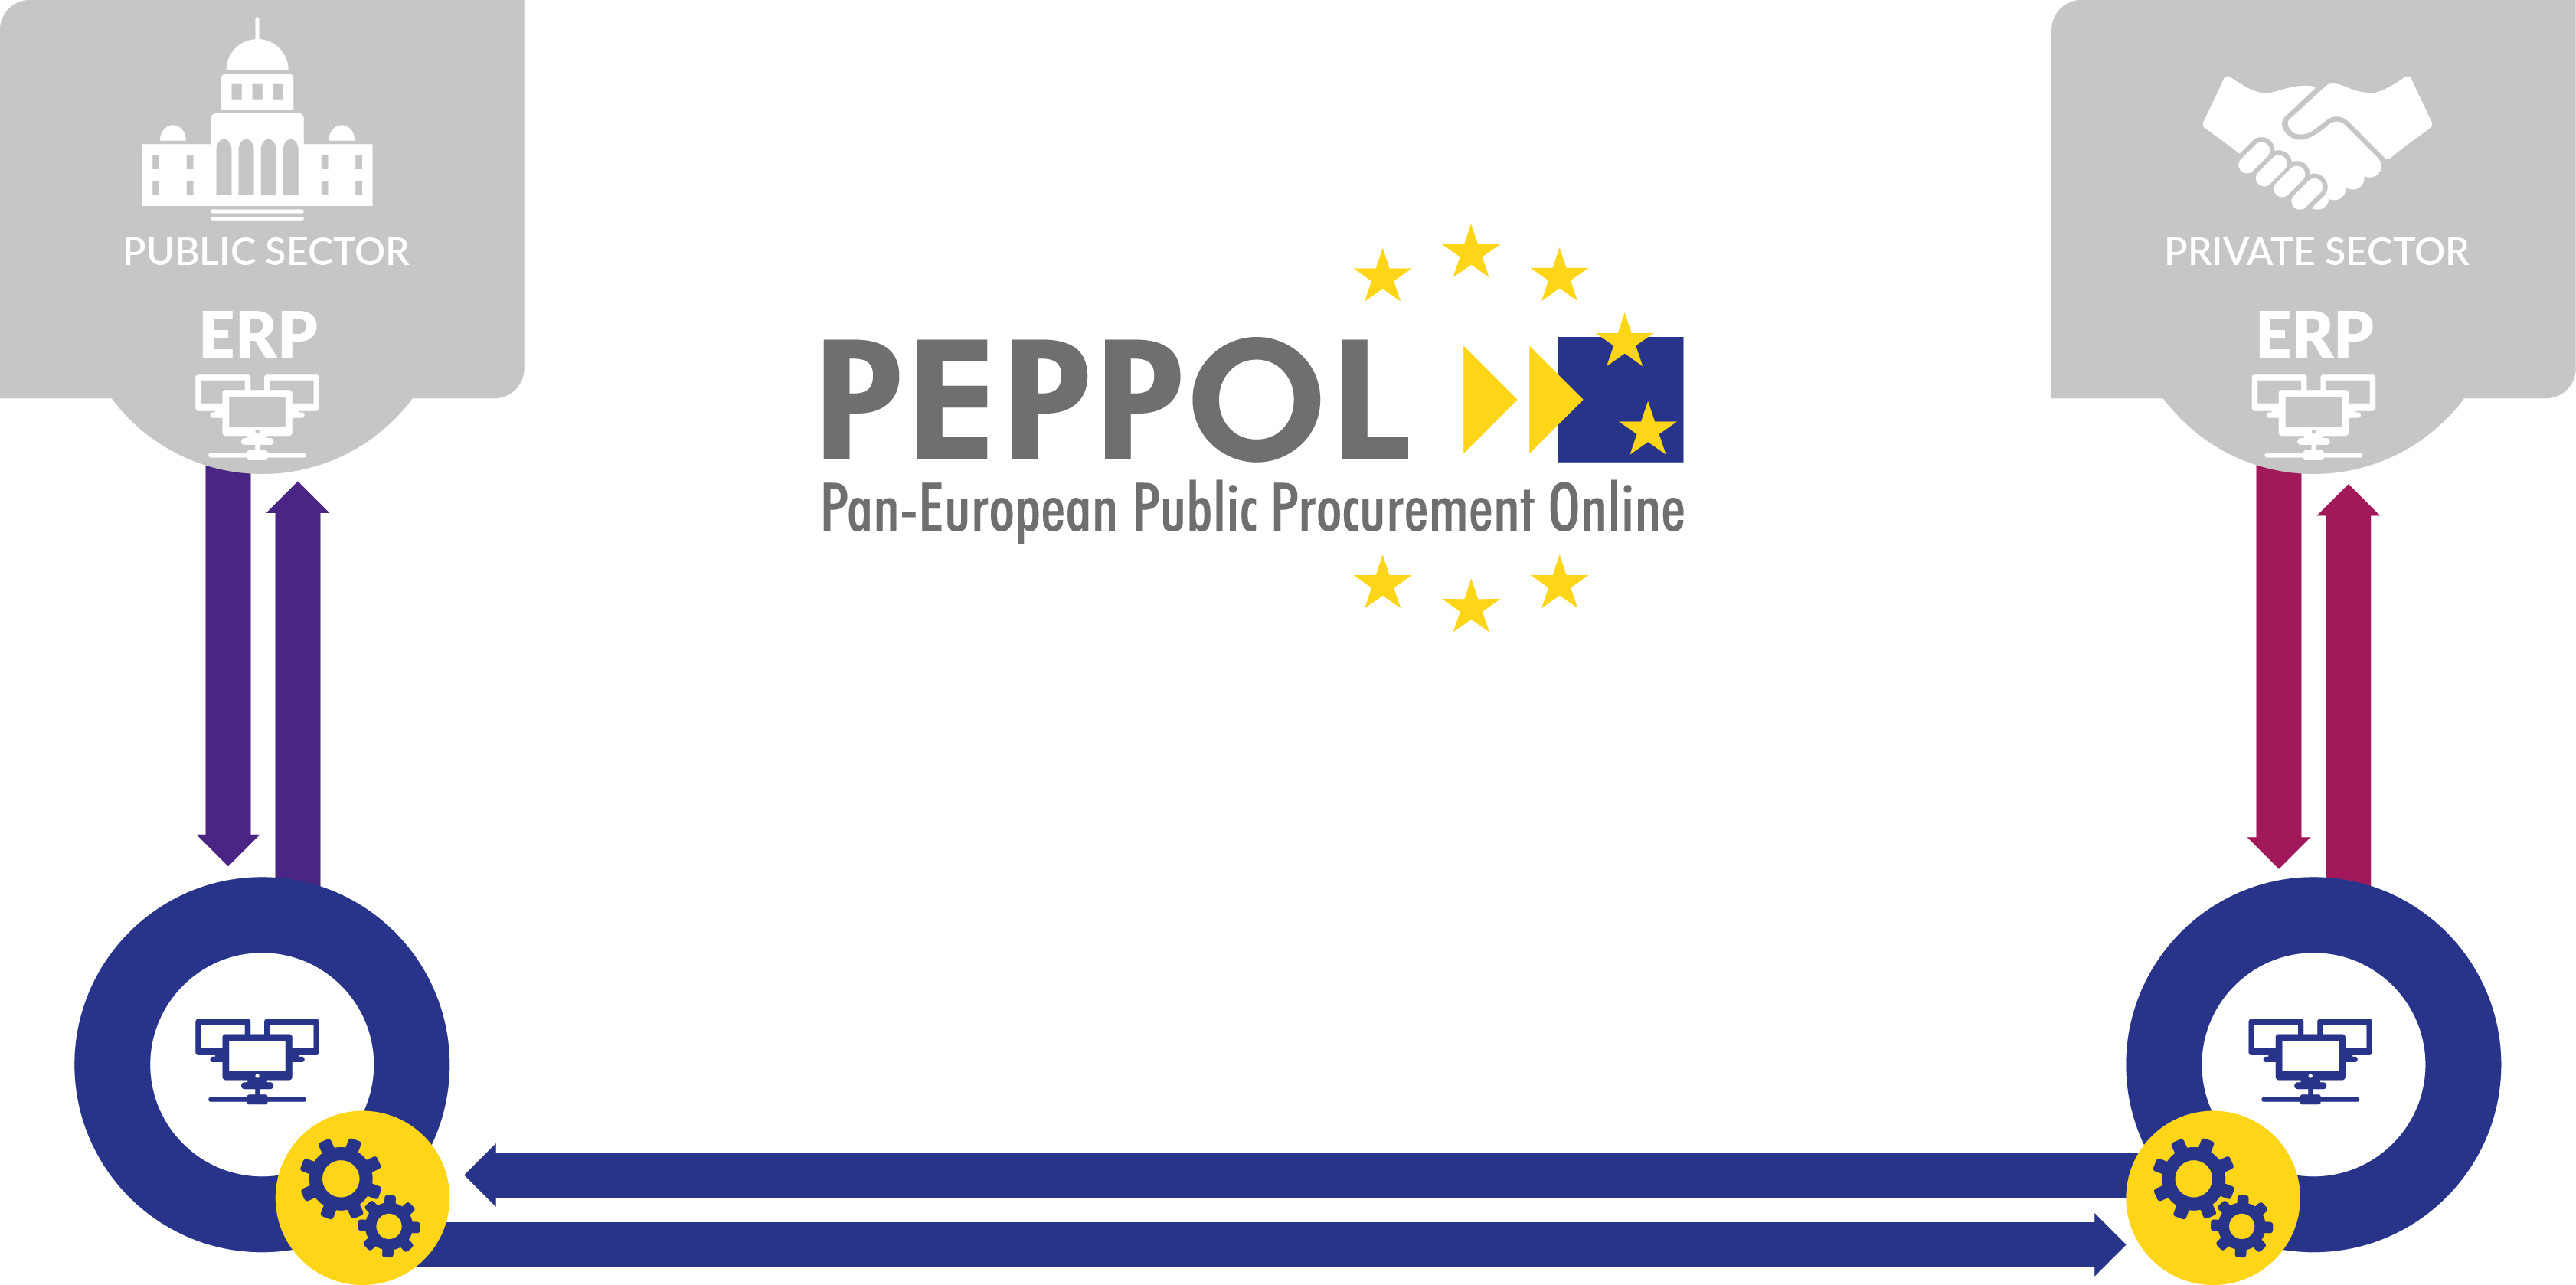 How to send e-invoices peppol network to government and ministries